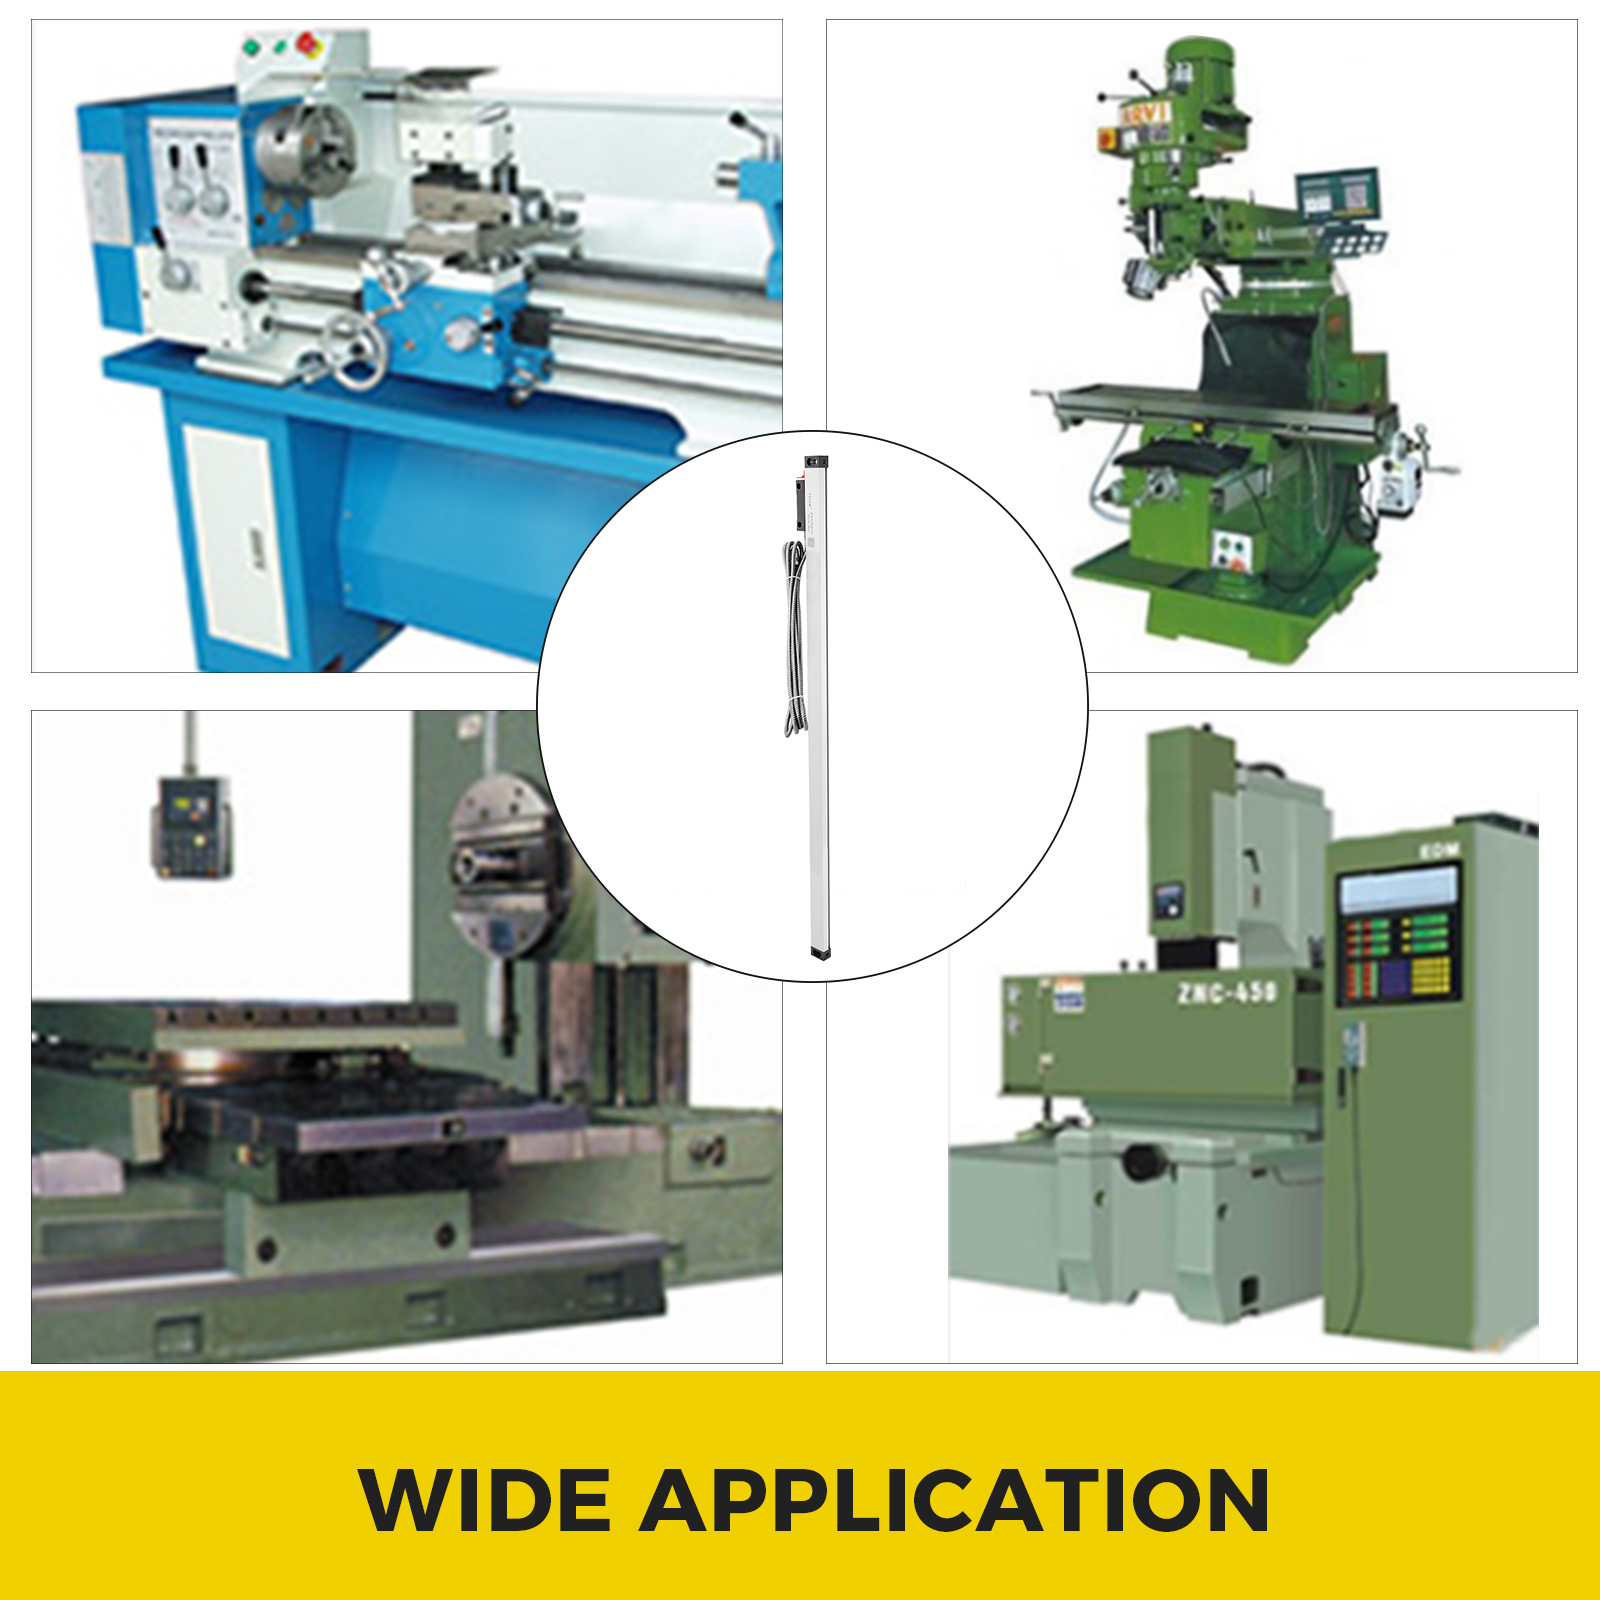 2-3-Axis-Digital-Readout-Linear-Scale-Double-Seal-5-Bearing-System-Grinding thumbnail 187